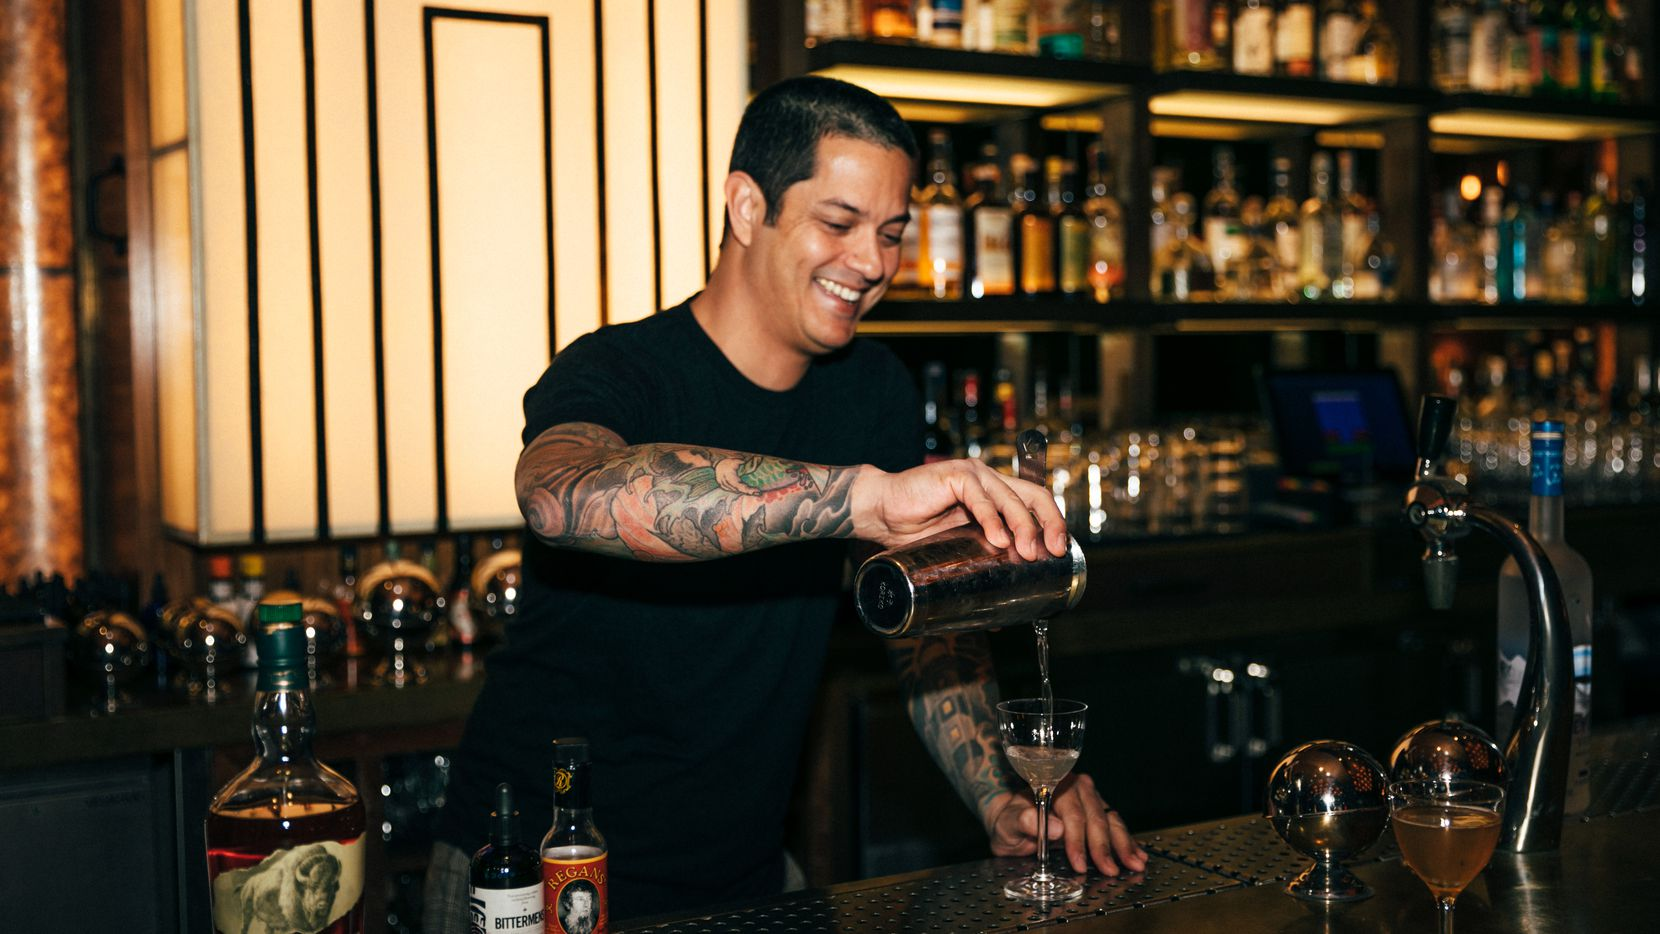 Gabe Sanchez, former owner of Black Swan Saloon, joins the staff at Midnight Rambler.